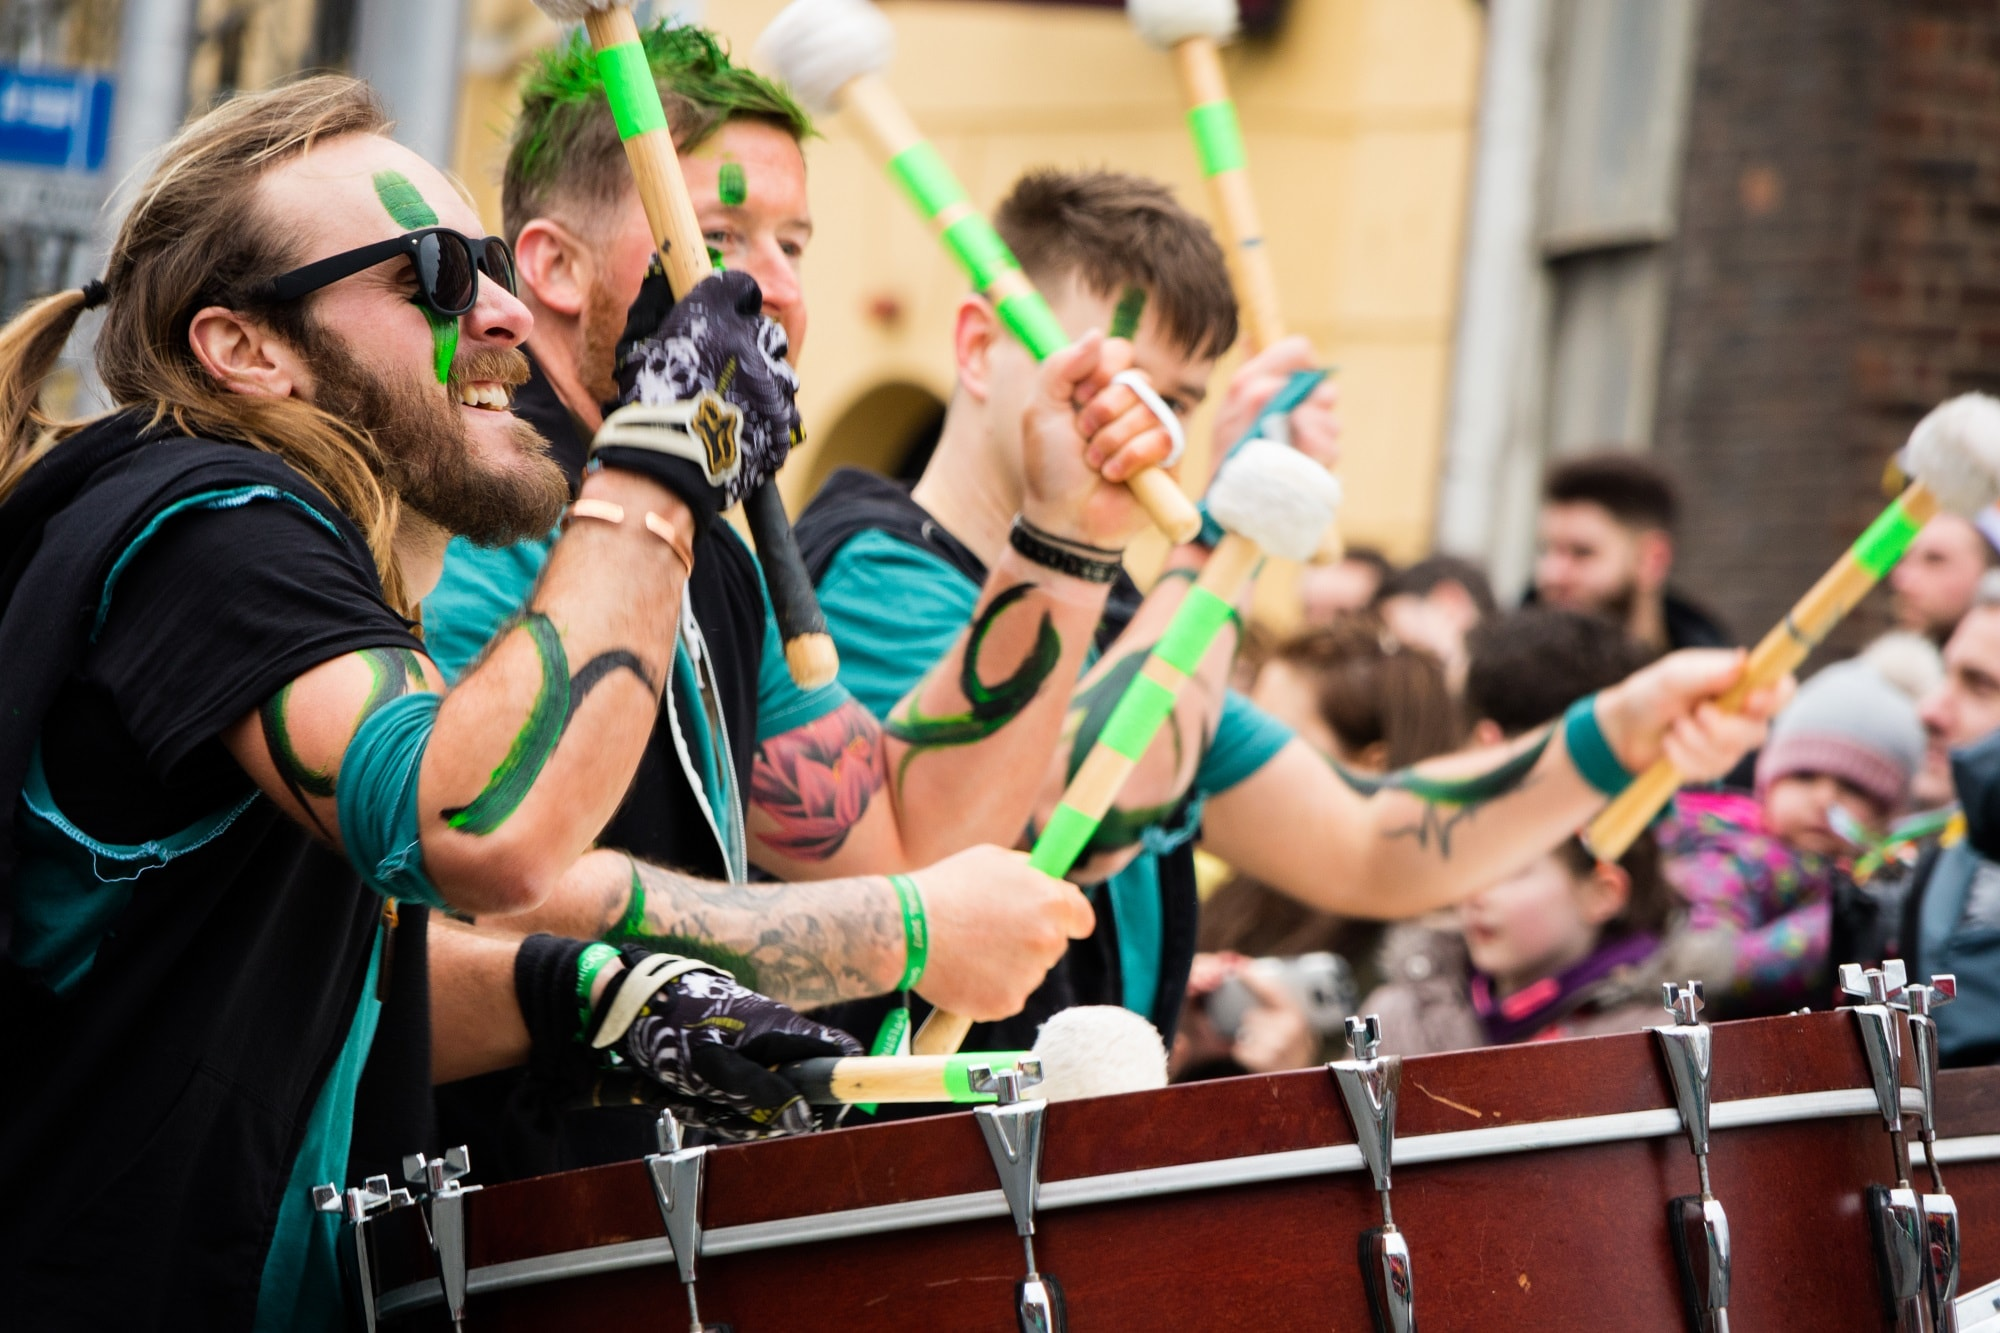 Get the best out of St. Patrick's Day 2018 in Dublin